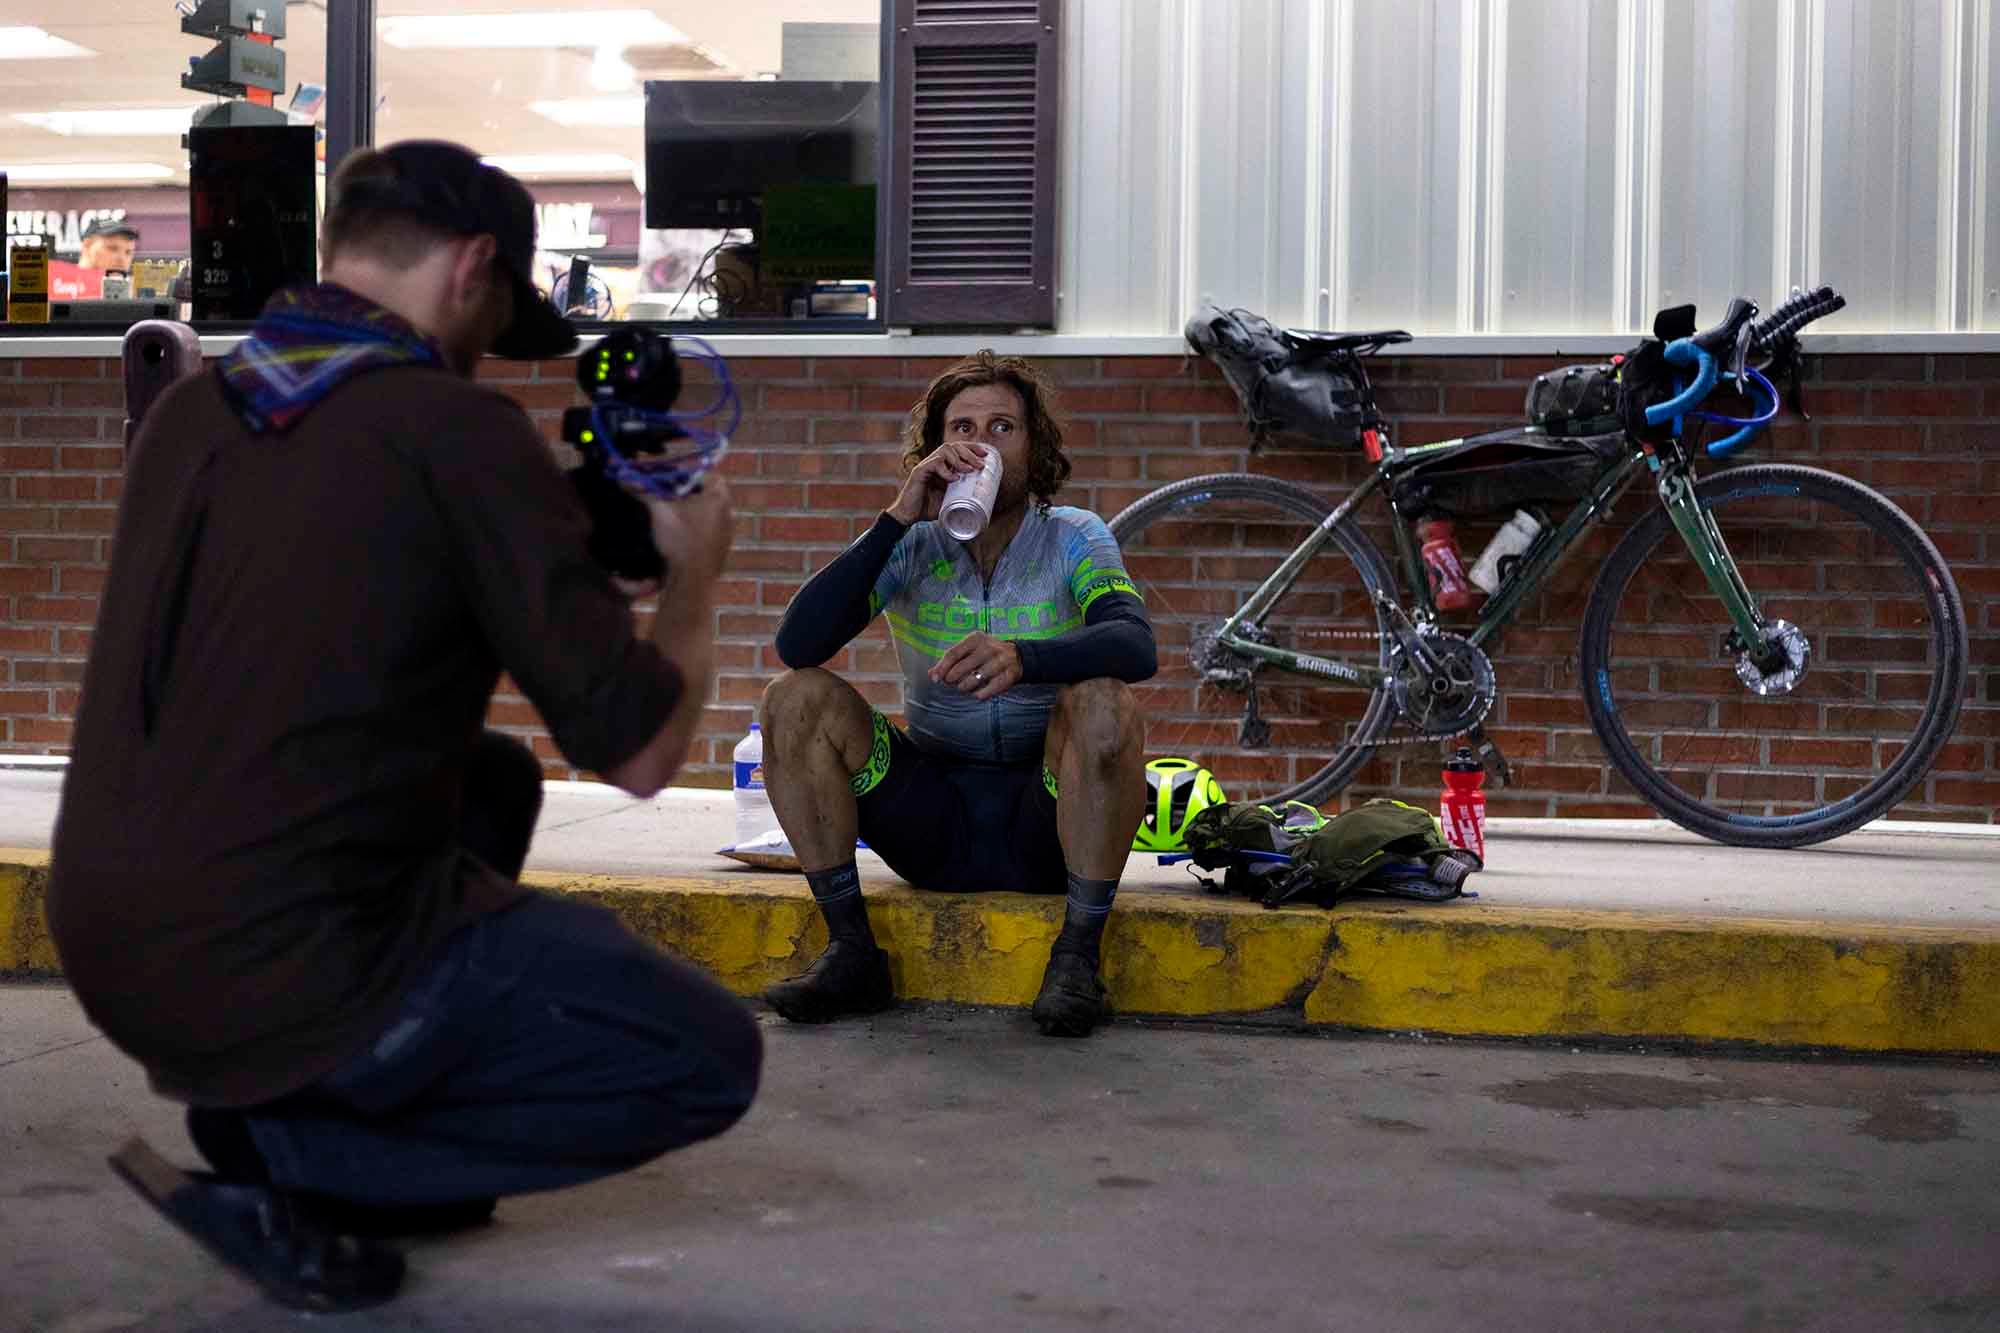 Justin Balog films Jake Wells outside of a gas station during the DKXL. Balog is working on a longer video project about Wells. (Rugile Kaladyte)